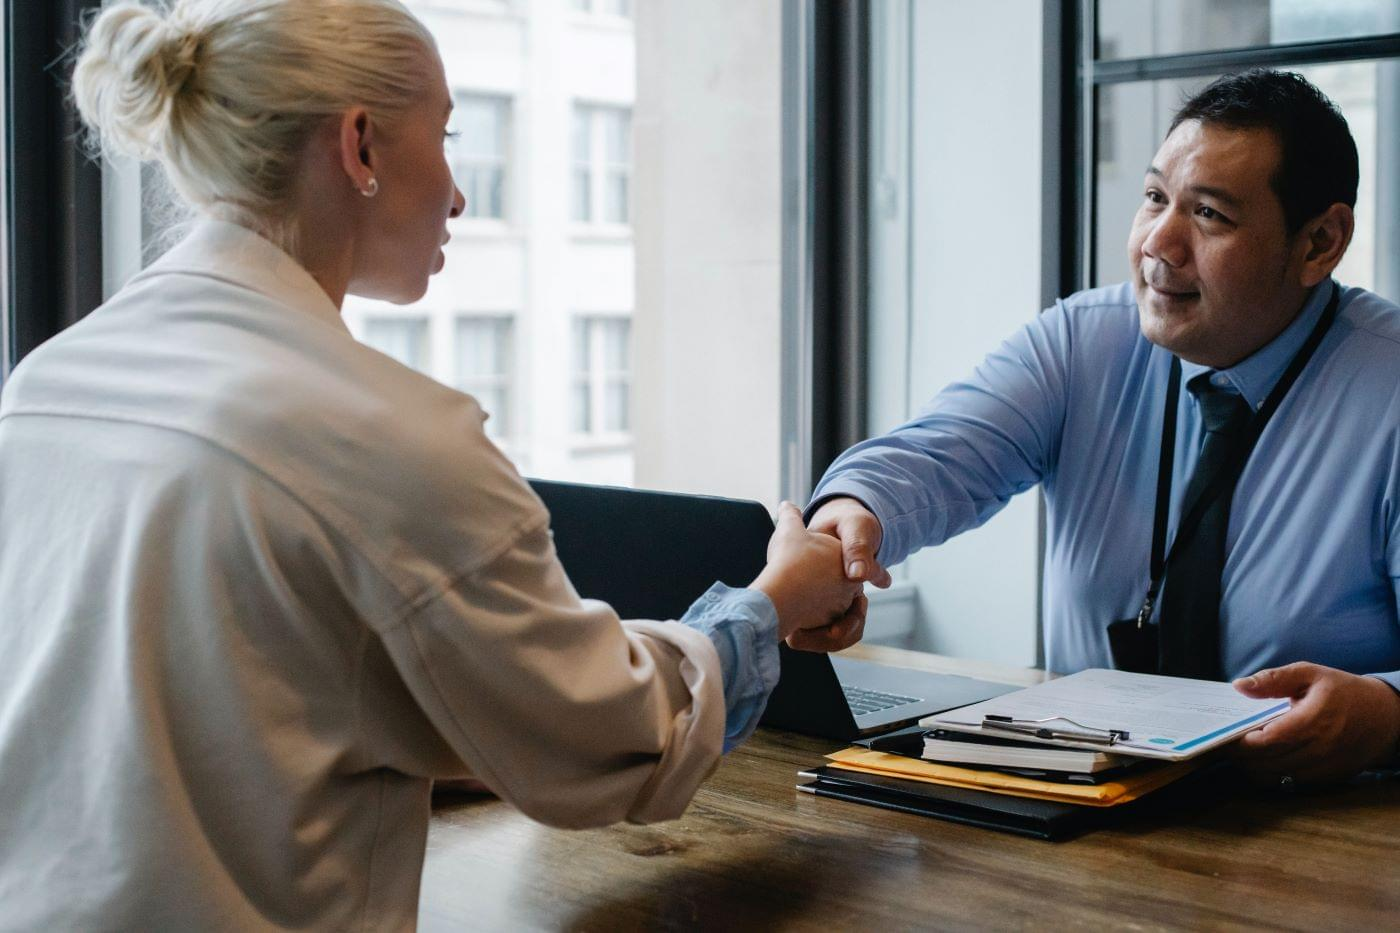 Two people shaking hands celebrating their business partnership.